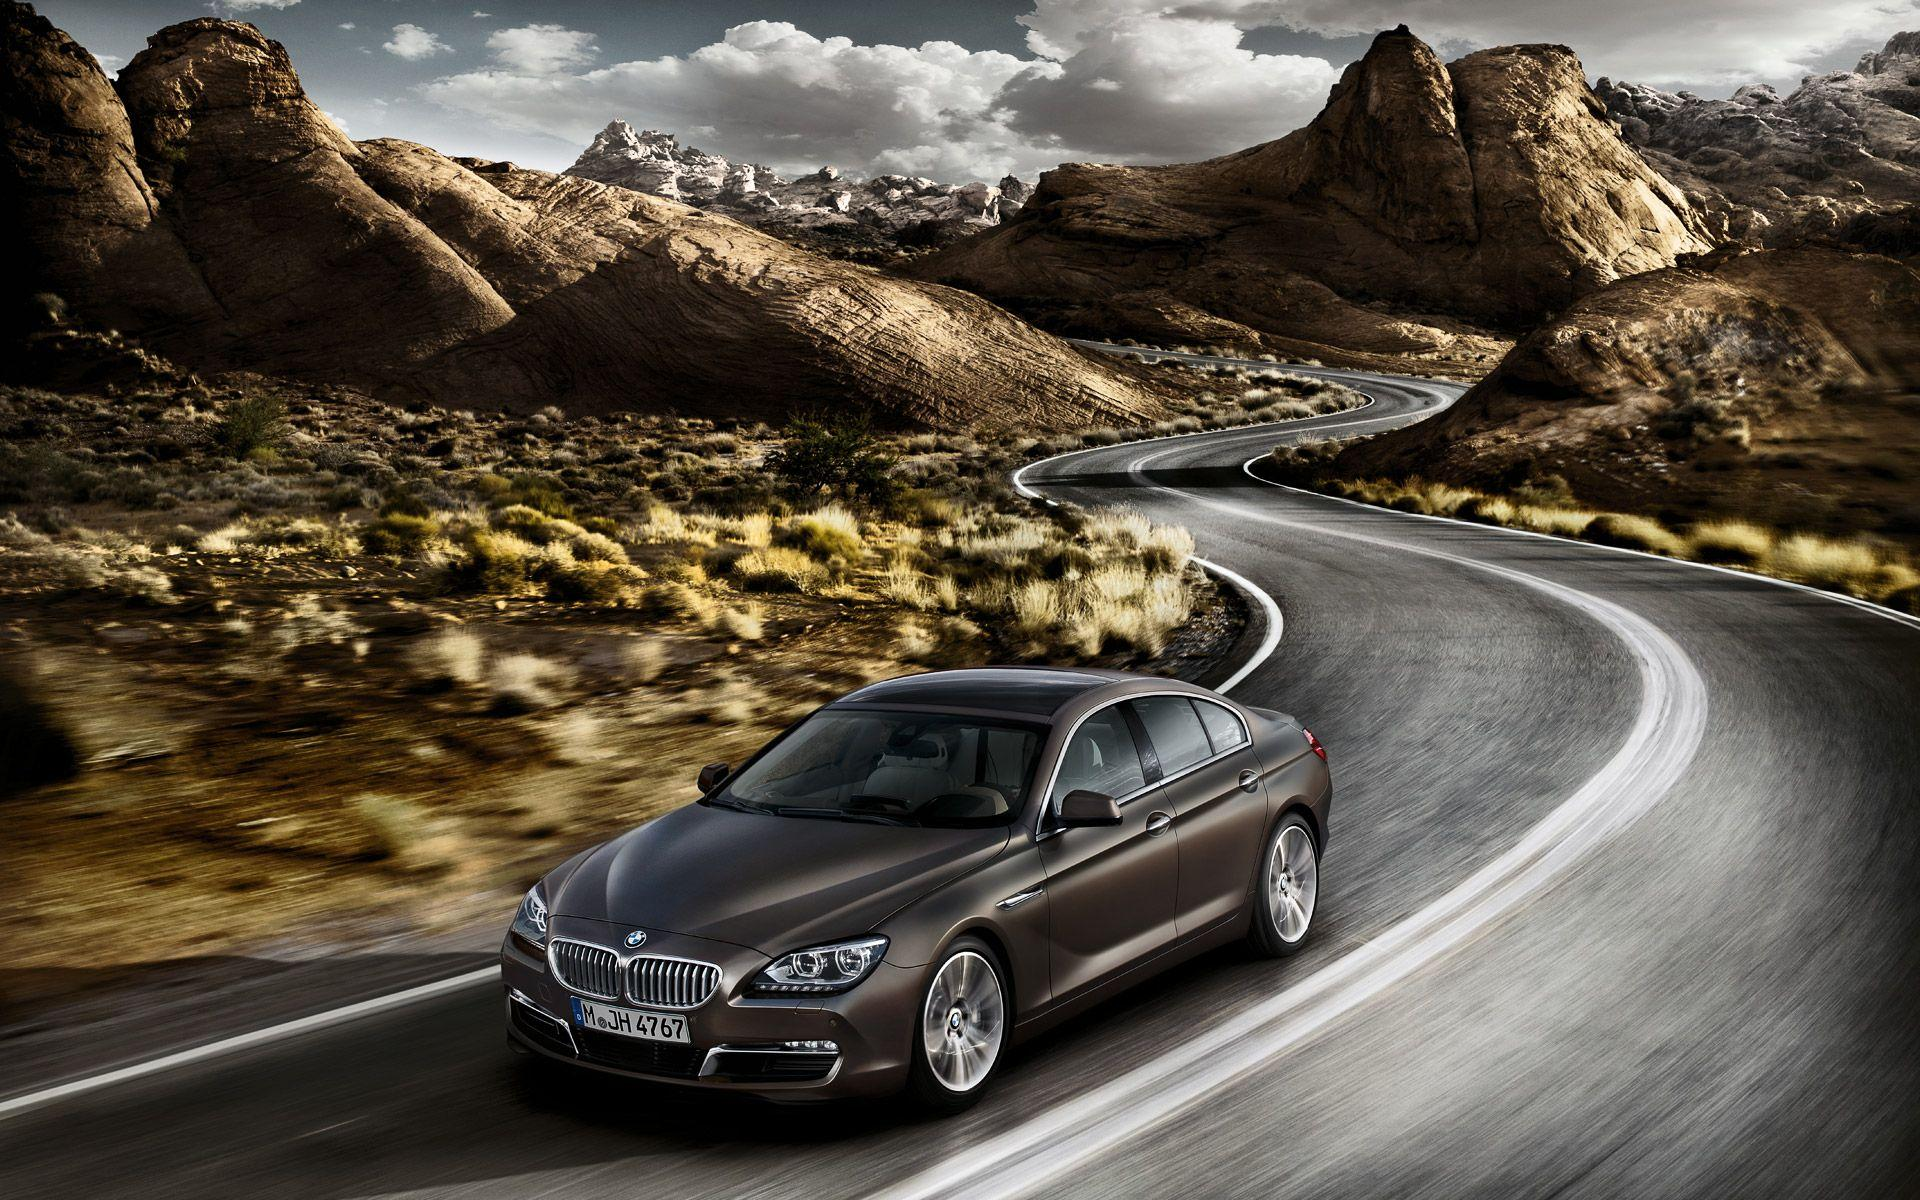 BMW 6 Series Gran Coupe to Make U.S. Debut at 2012 Amelia Island